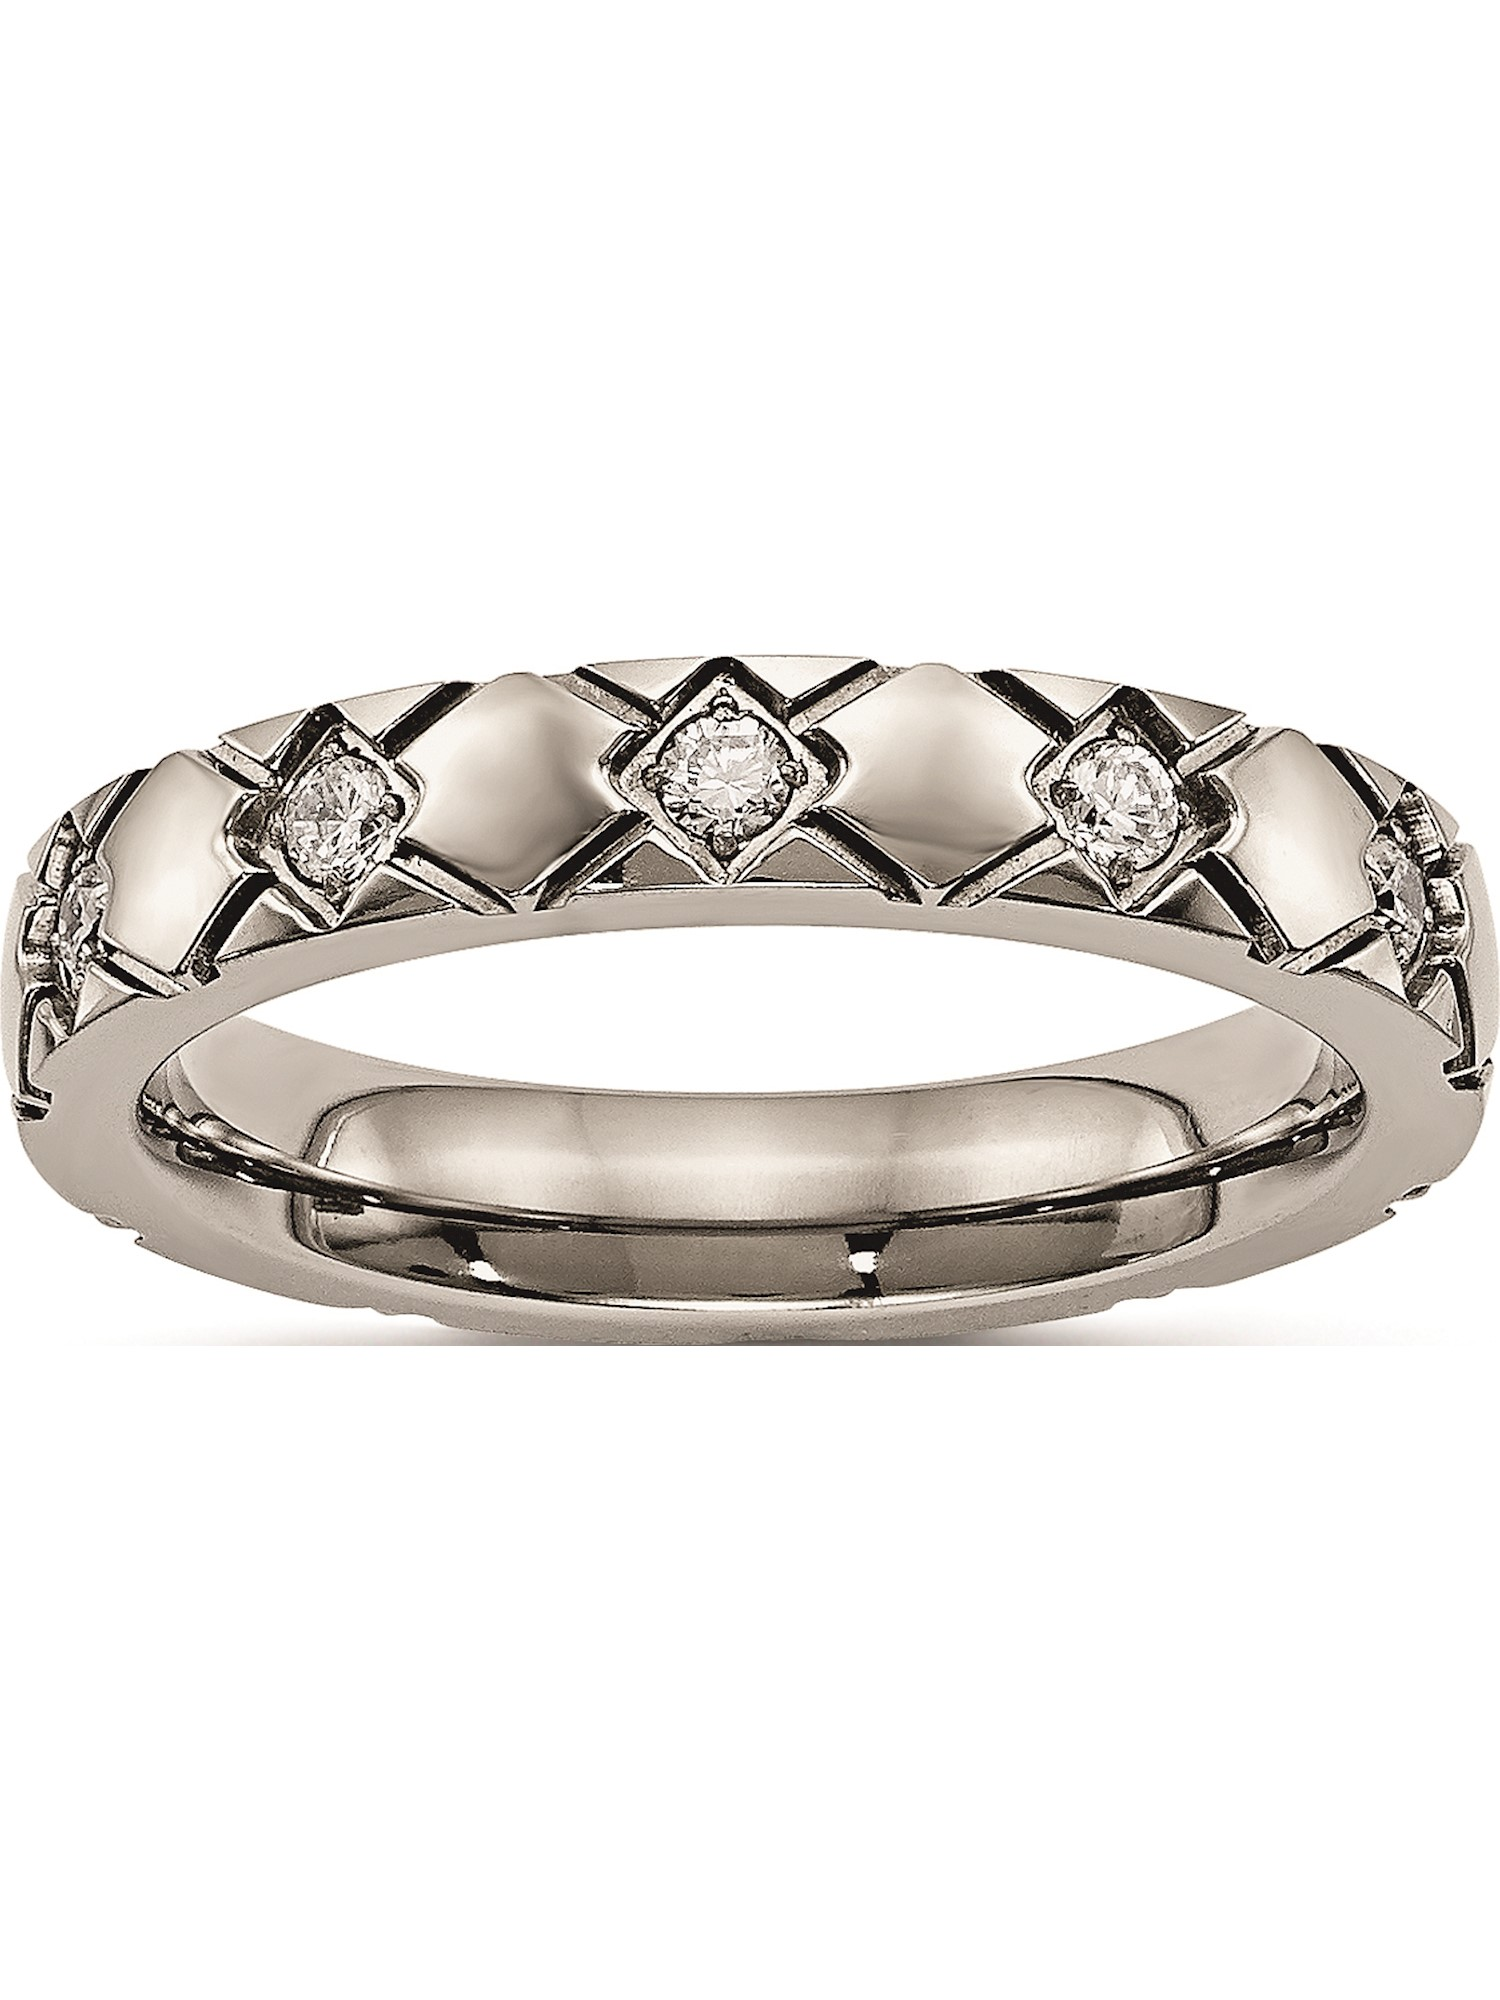 Titanium Polished Grooved CZ Ring.